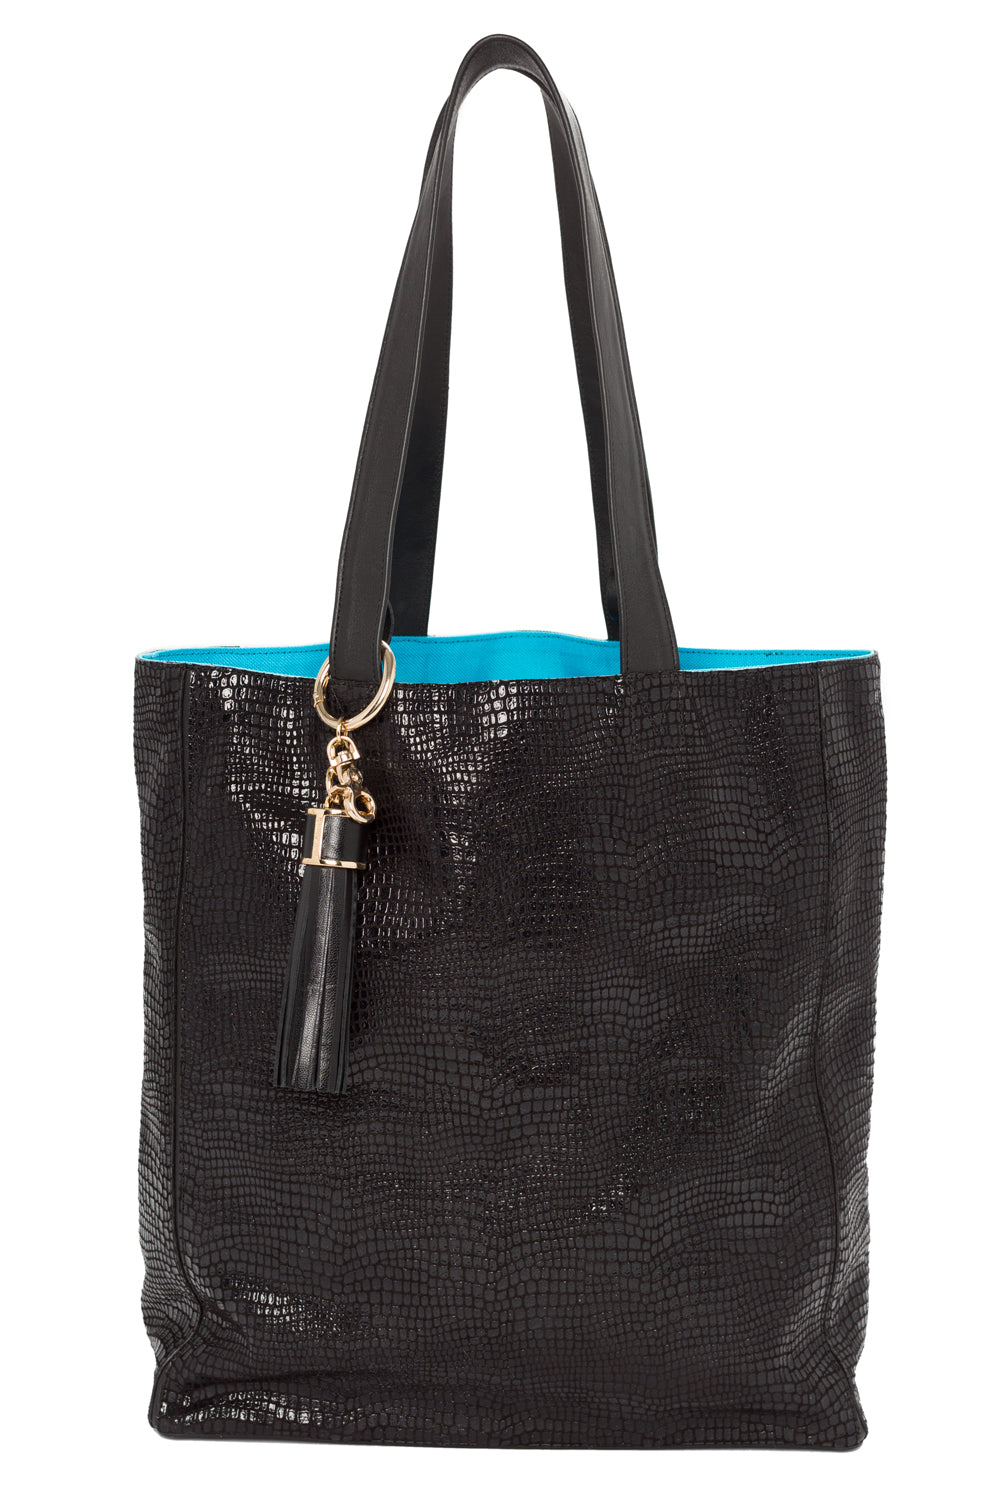 High-Gloss, Lizard-Effect Leather 'Stuart' Carryall Tote | Mel Boteri | Front View